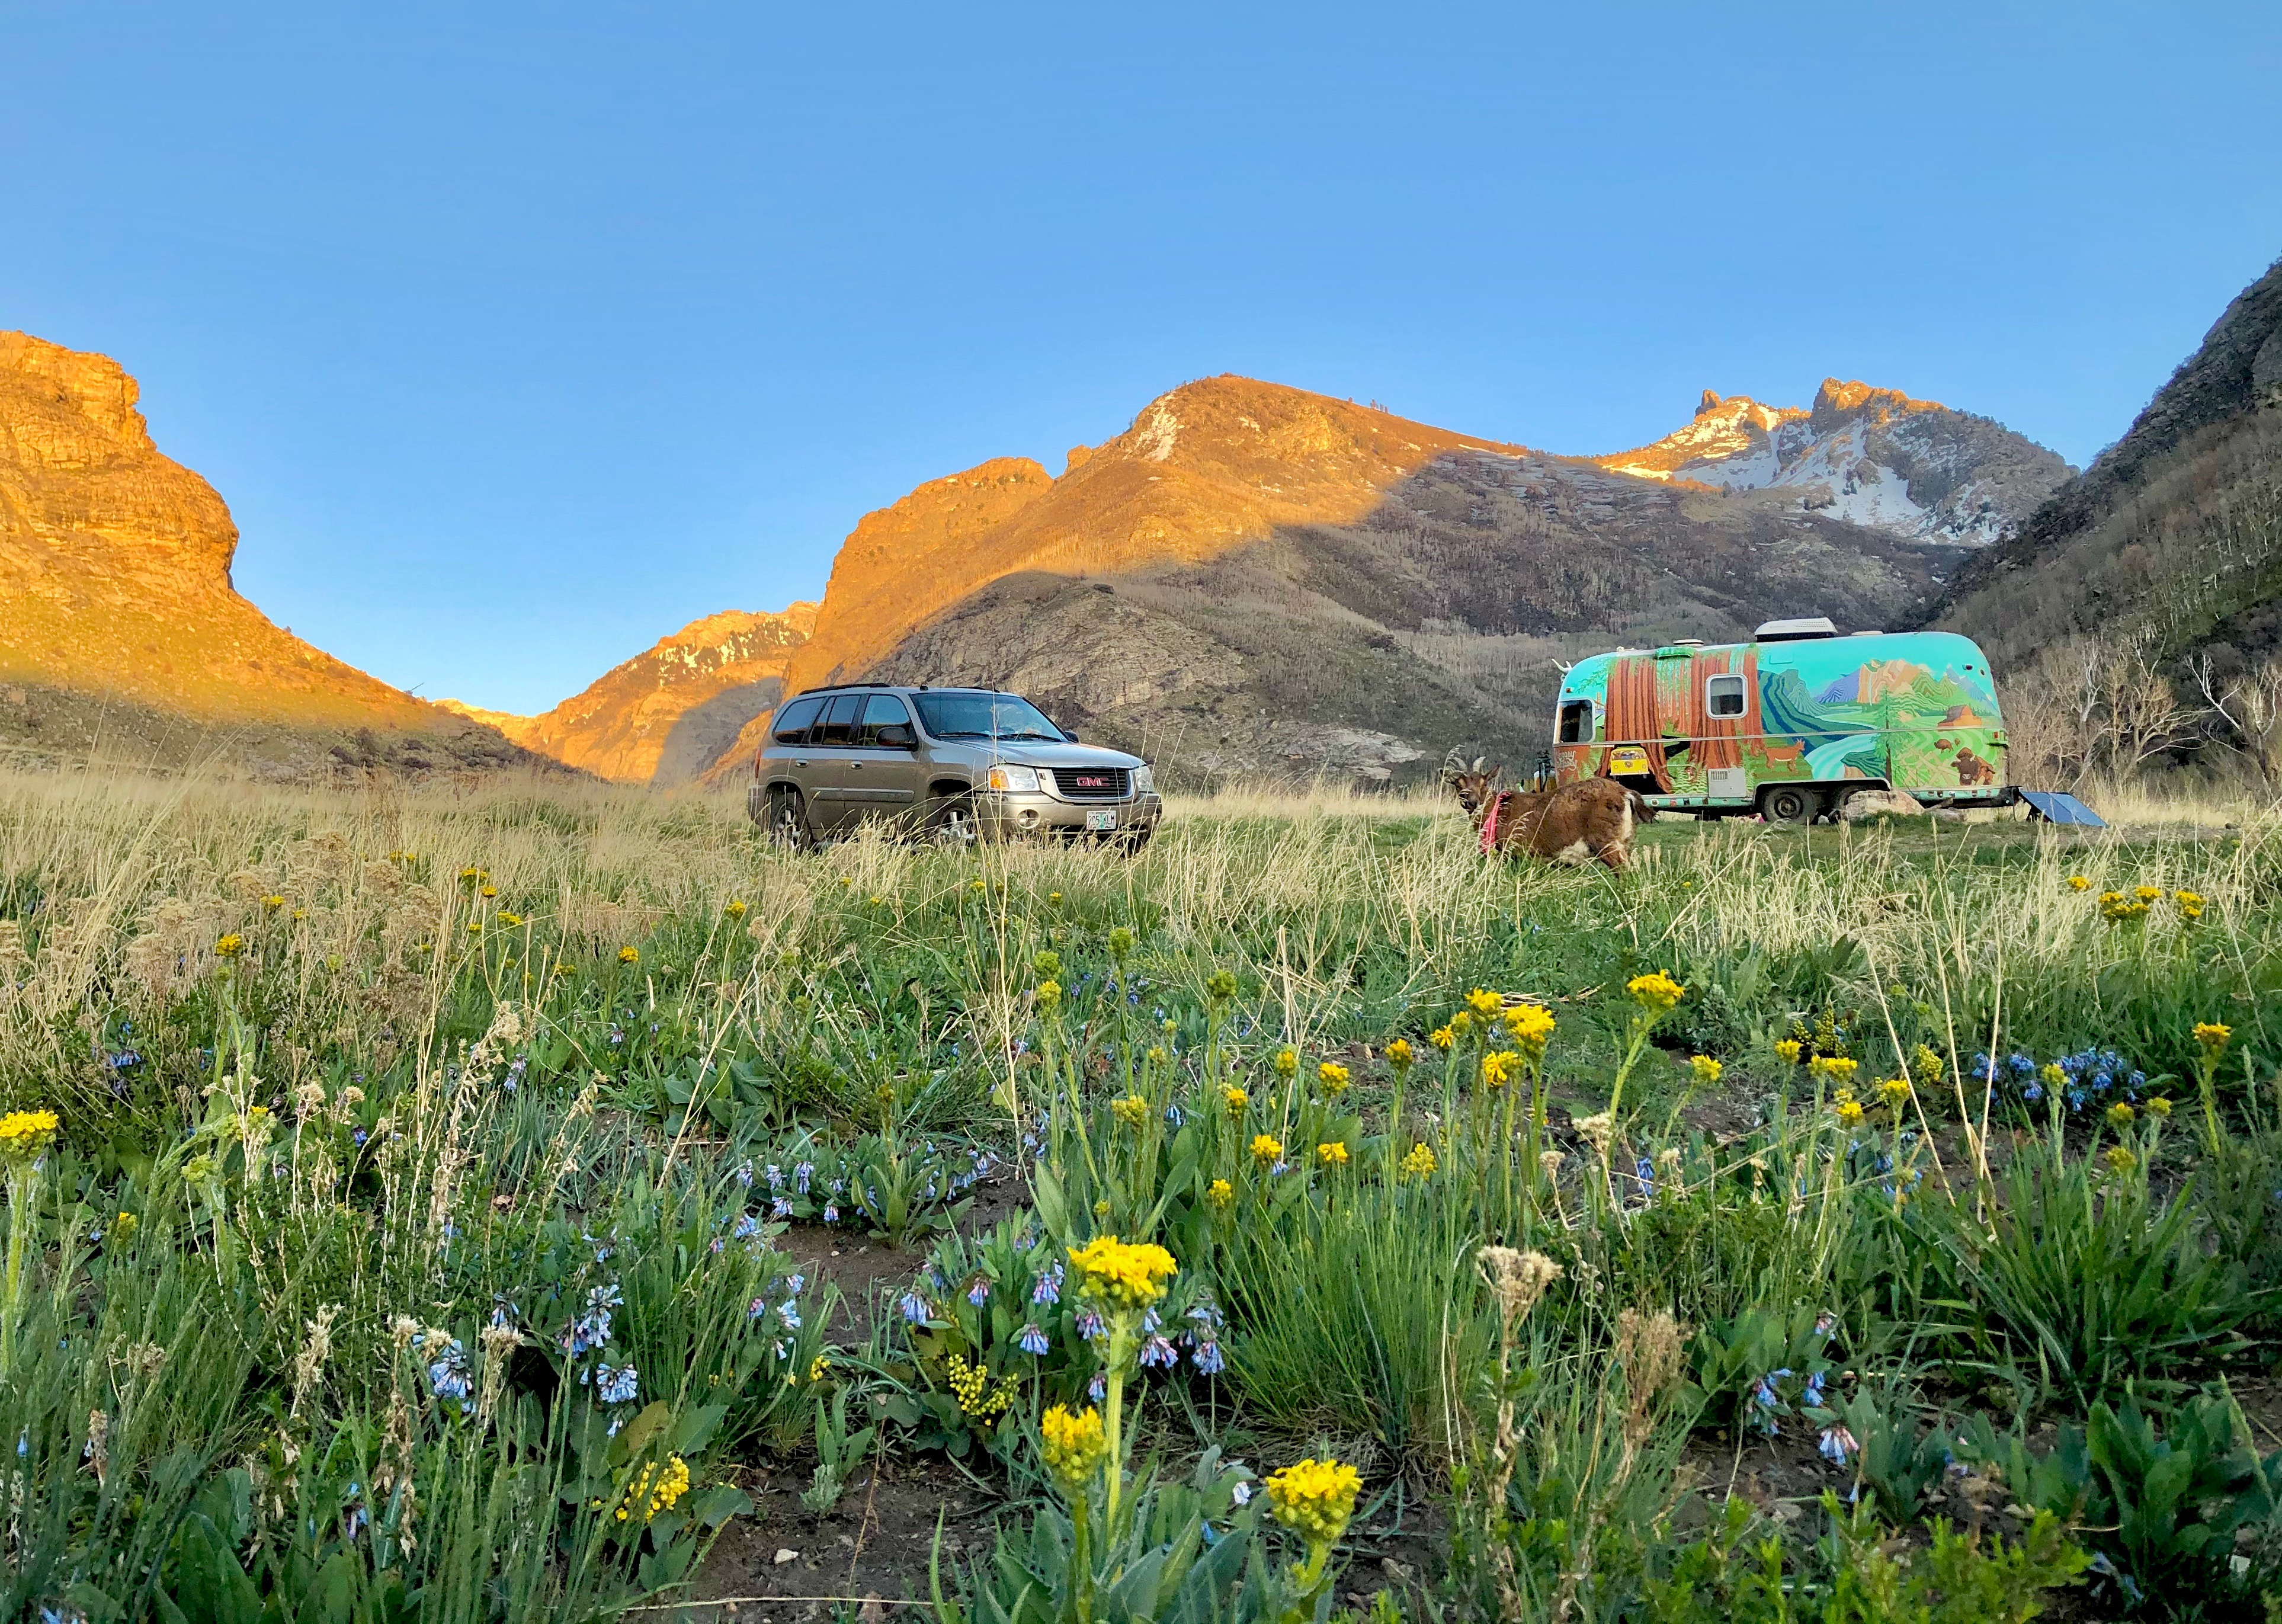 Truck and travel trailer parked in a meadow